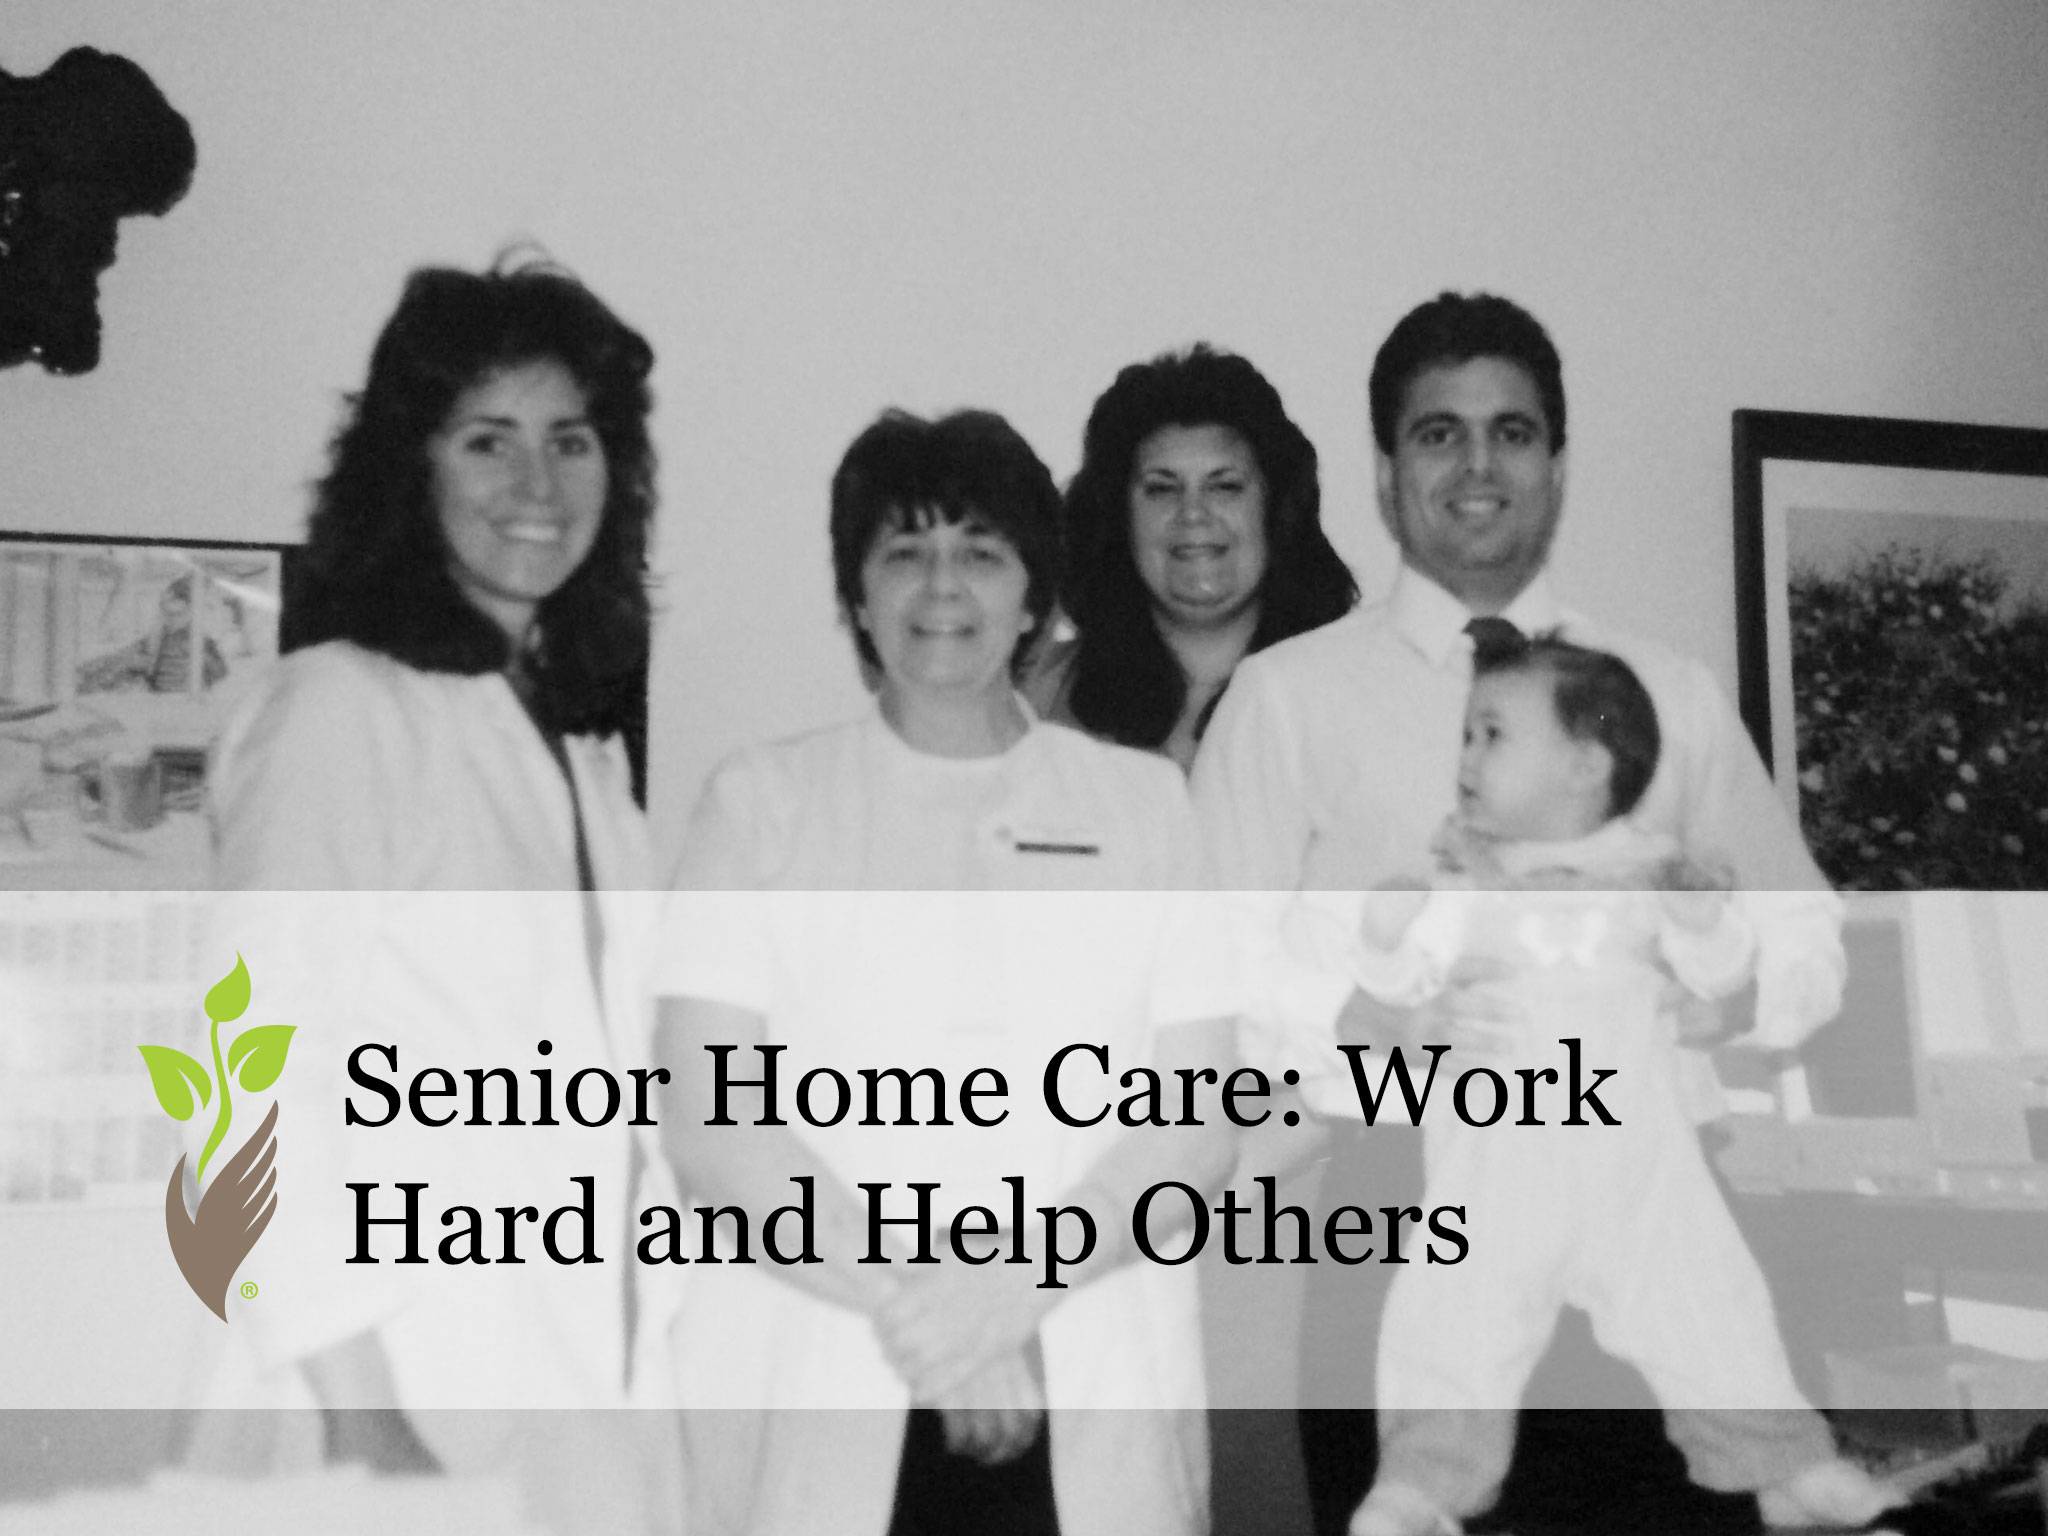 Senior Home Care: Work Hard and Help Others